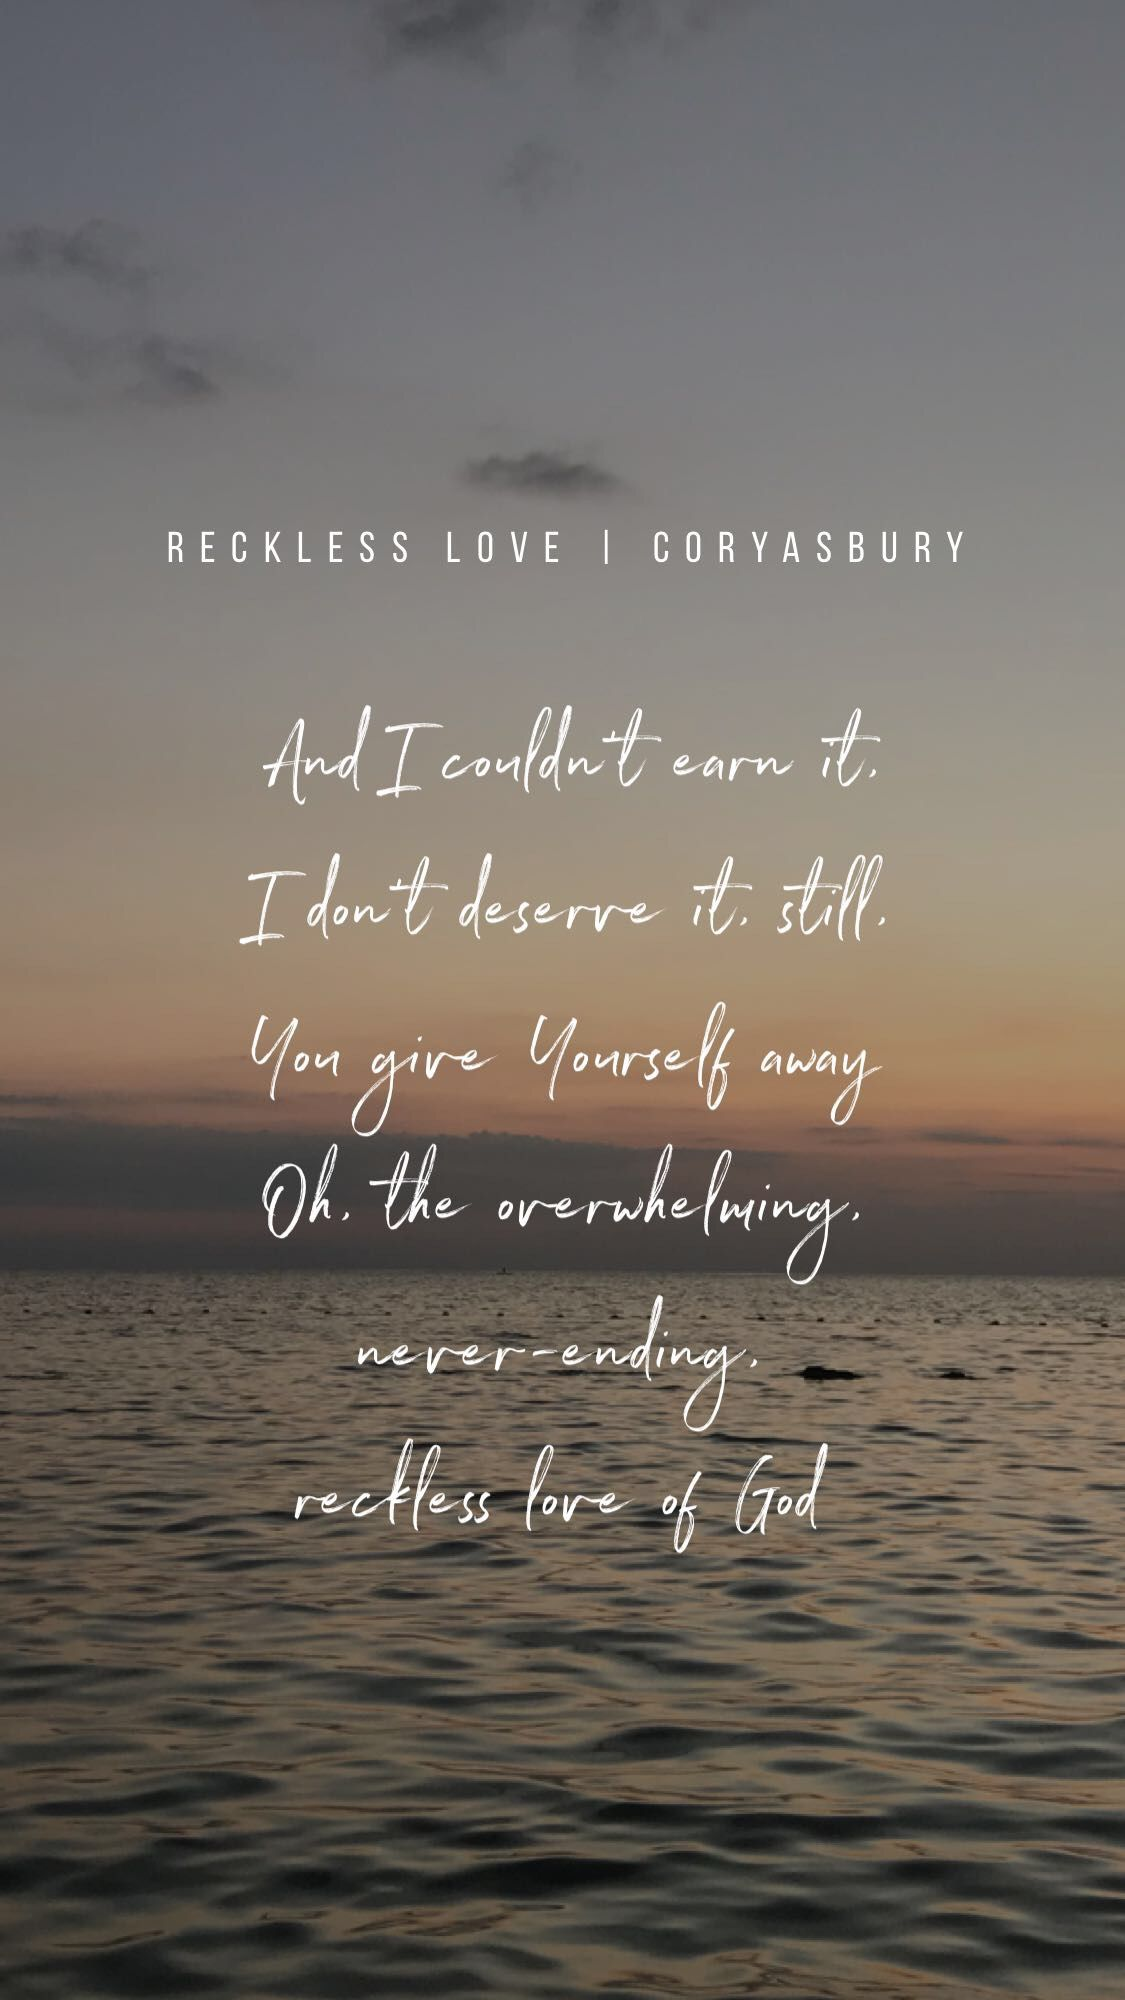 Reckless Love | Christian Song Lyrics | Christian song quotes